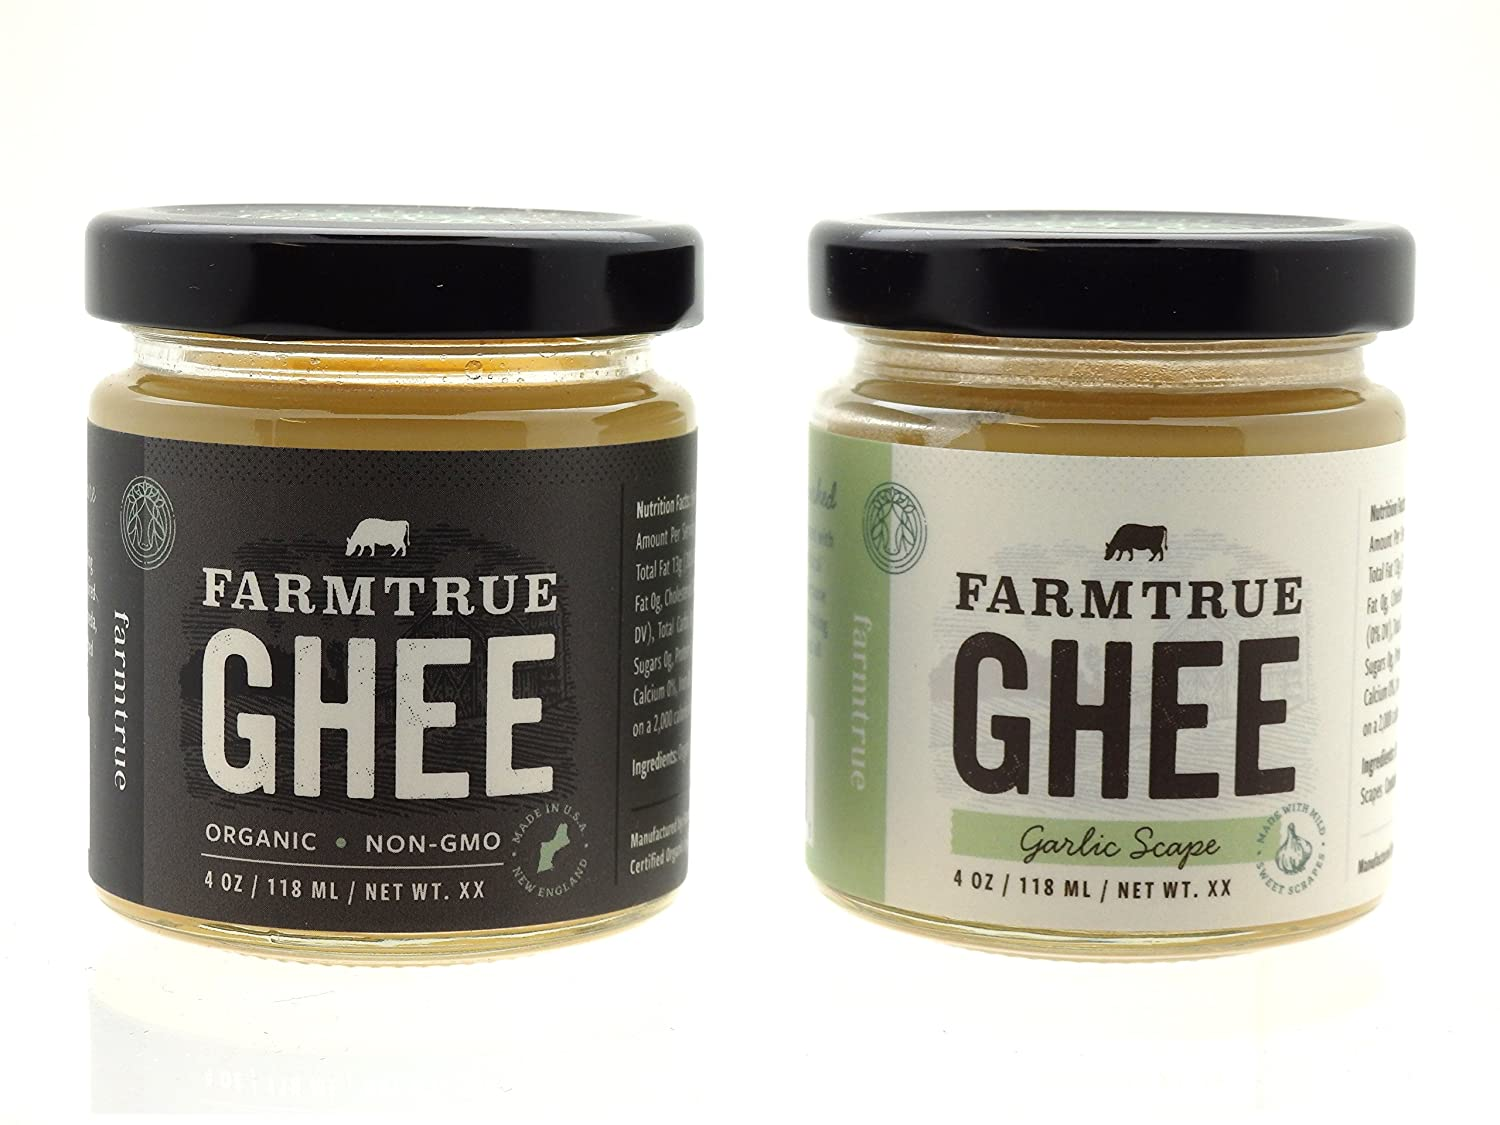 55126a3e62c1 Amazon.com   Ghee - Traditional and Garlic Scape - Gift Packaged   Grocery    Gourmet Food